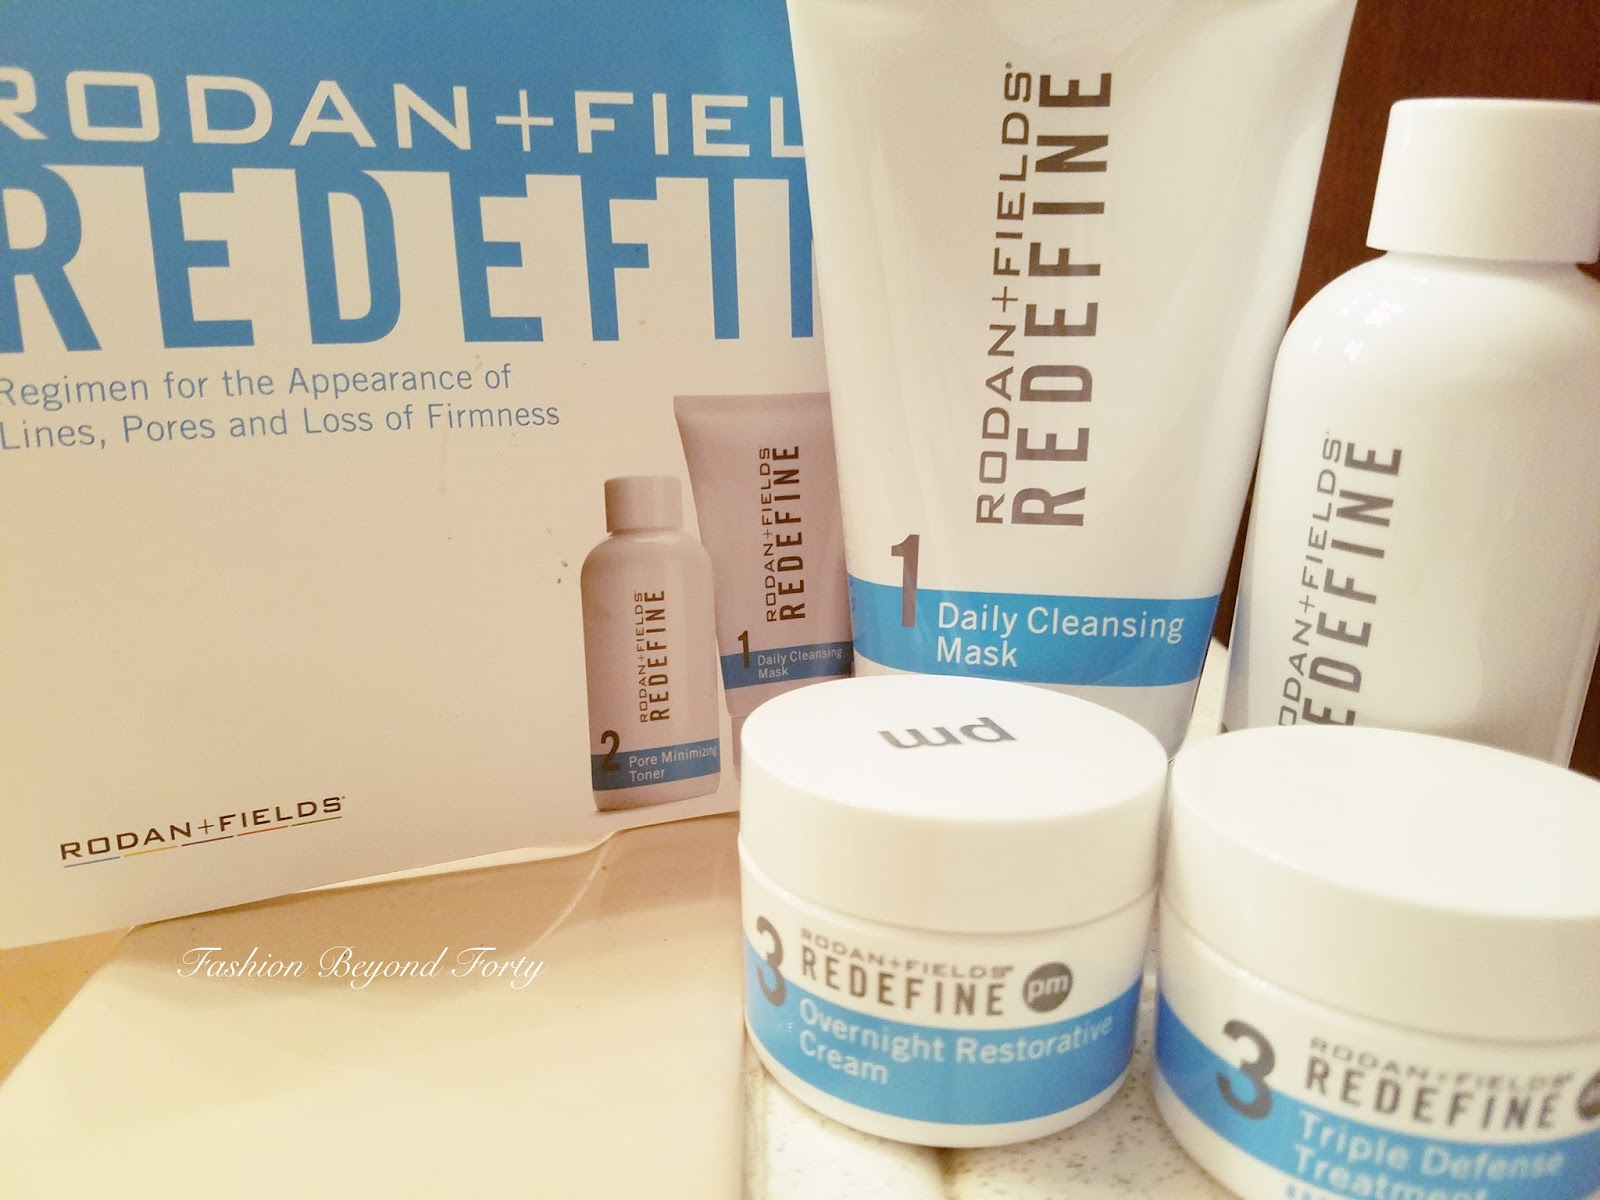 So What Is The Rave About Rodan and Fields Skin Care Regimen? Life's A Beach! Giveaway Hop $222 RTV Prize!